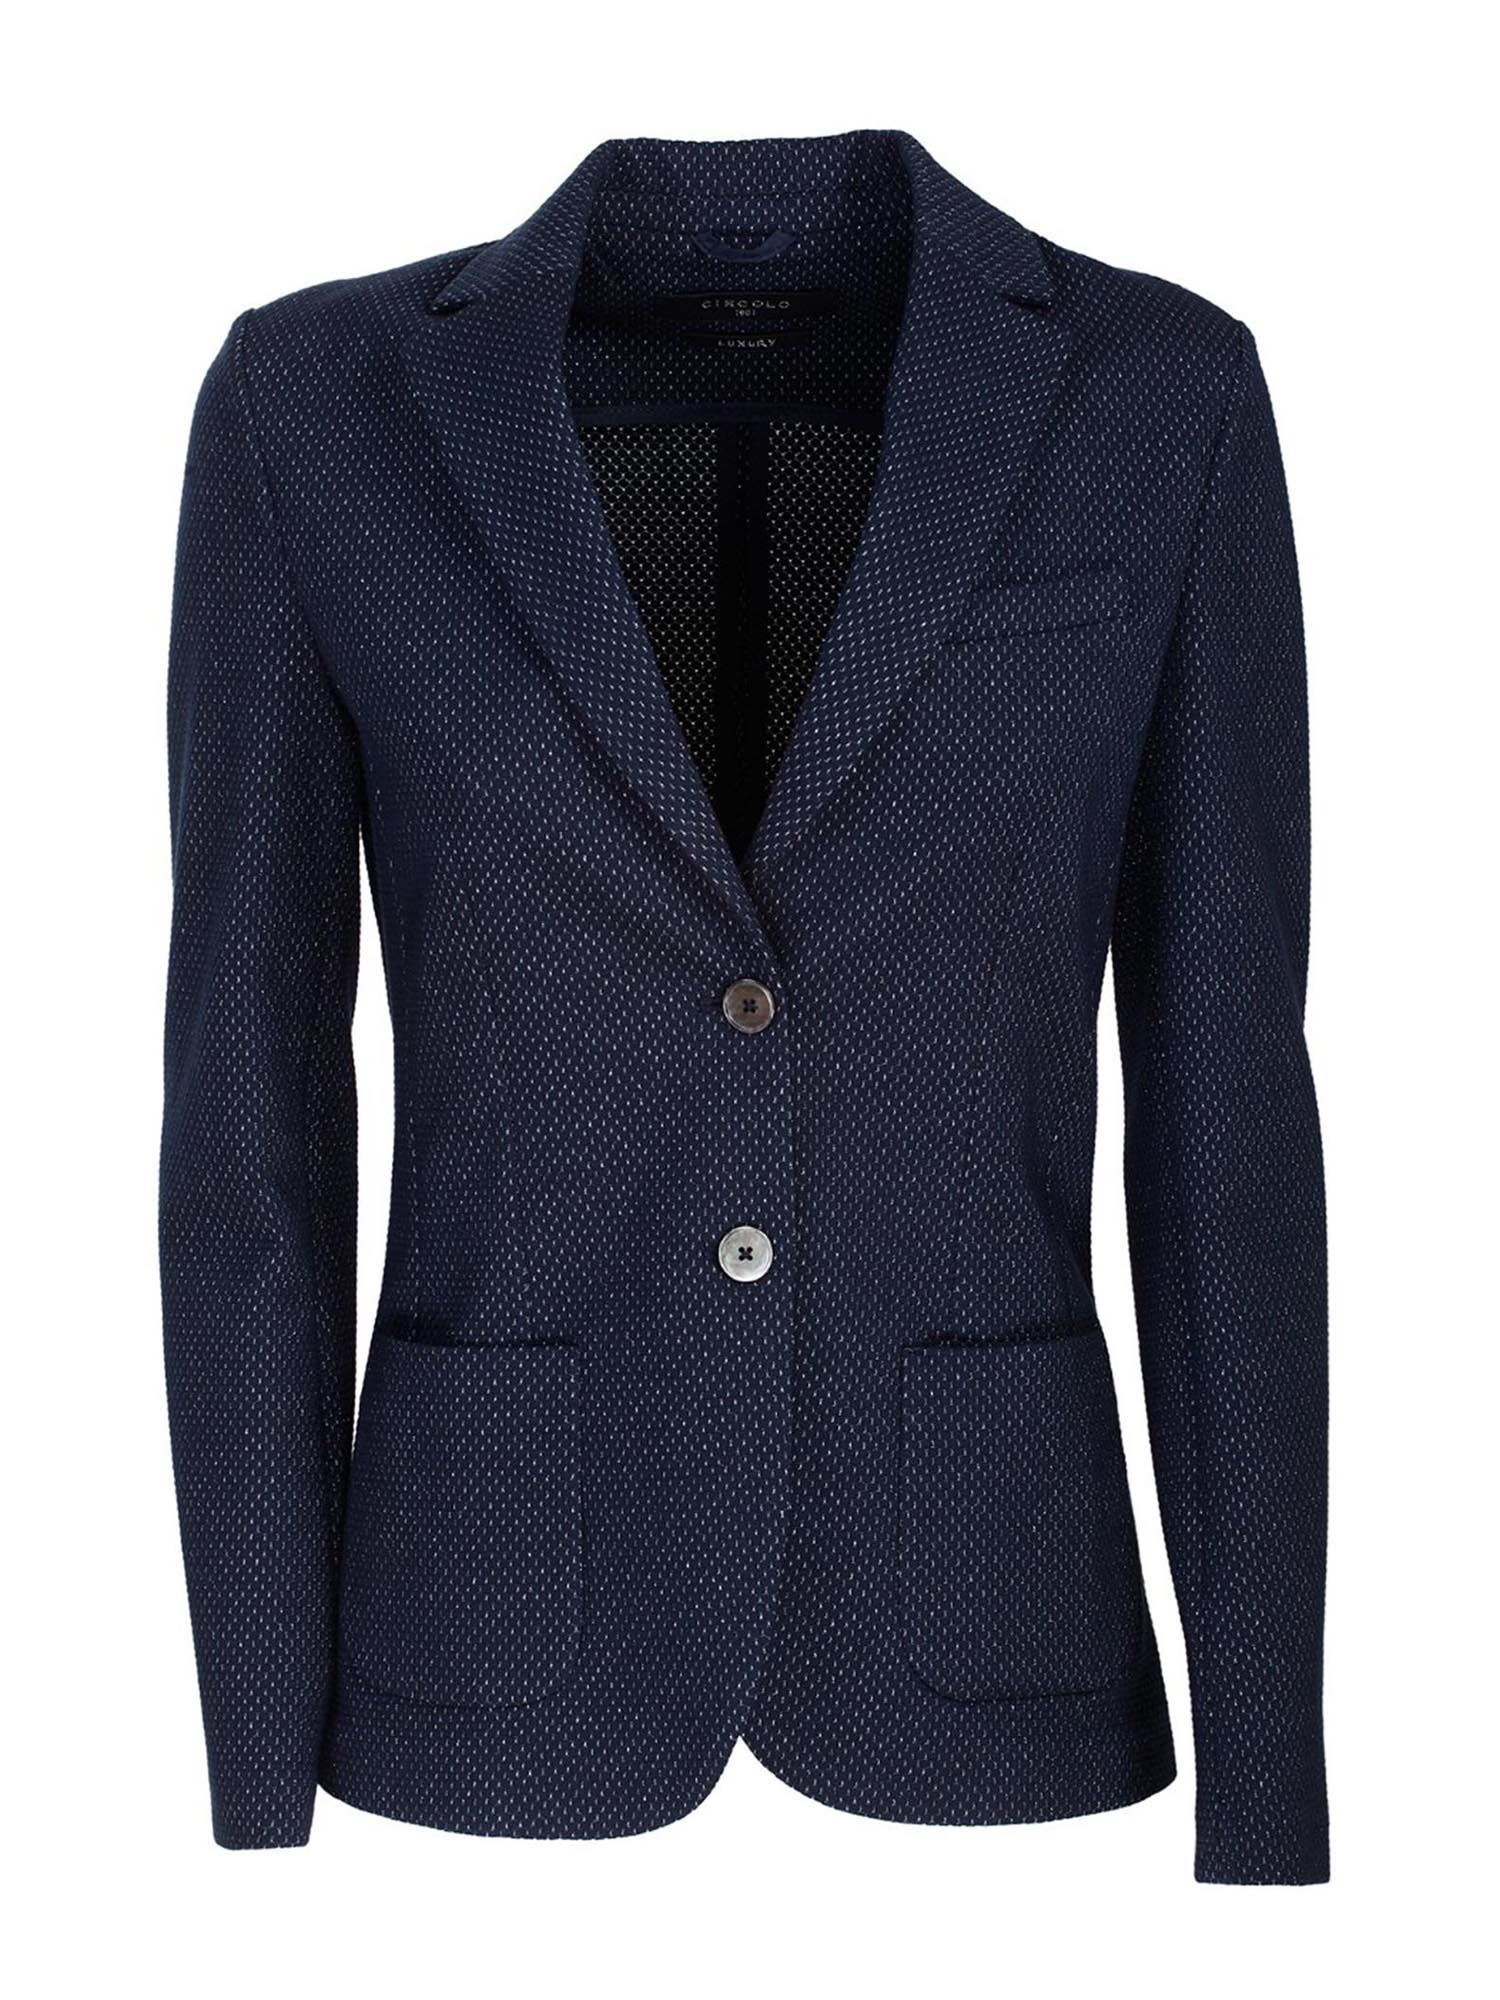 Circolo 1901 Cottons MICRO-PATTERN JACKET IN BLUE